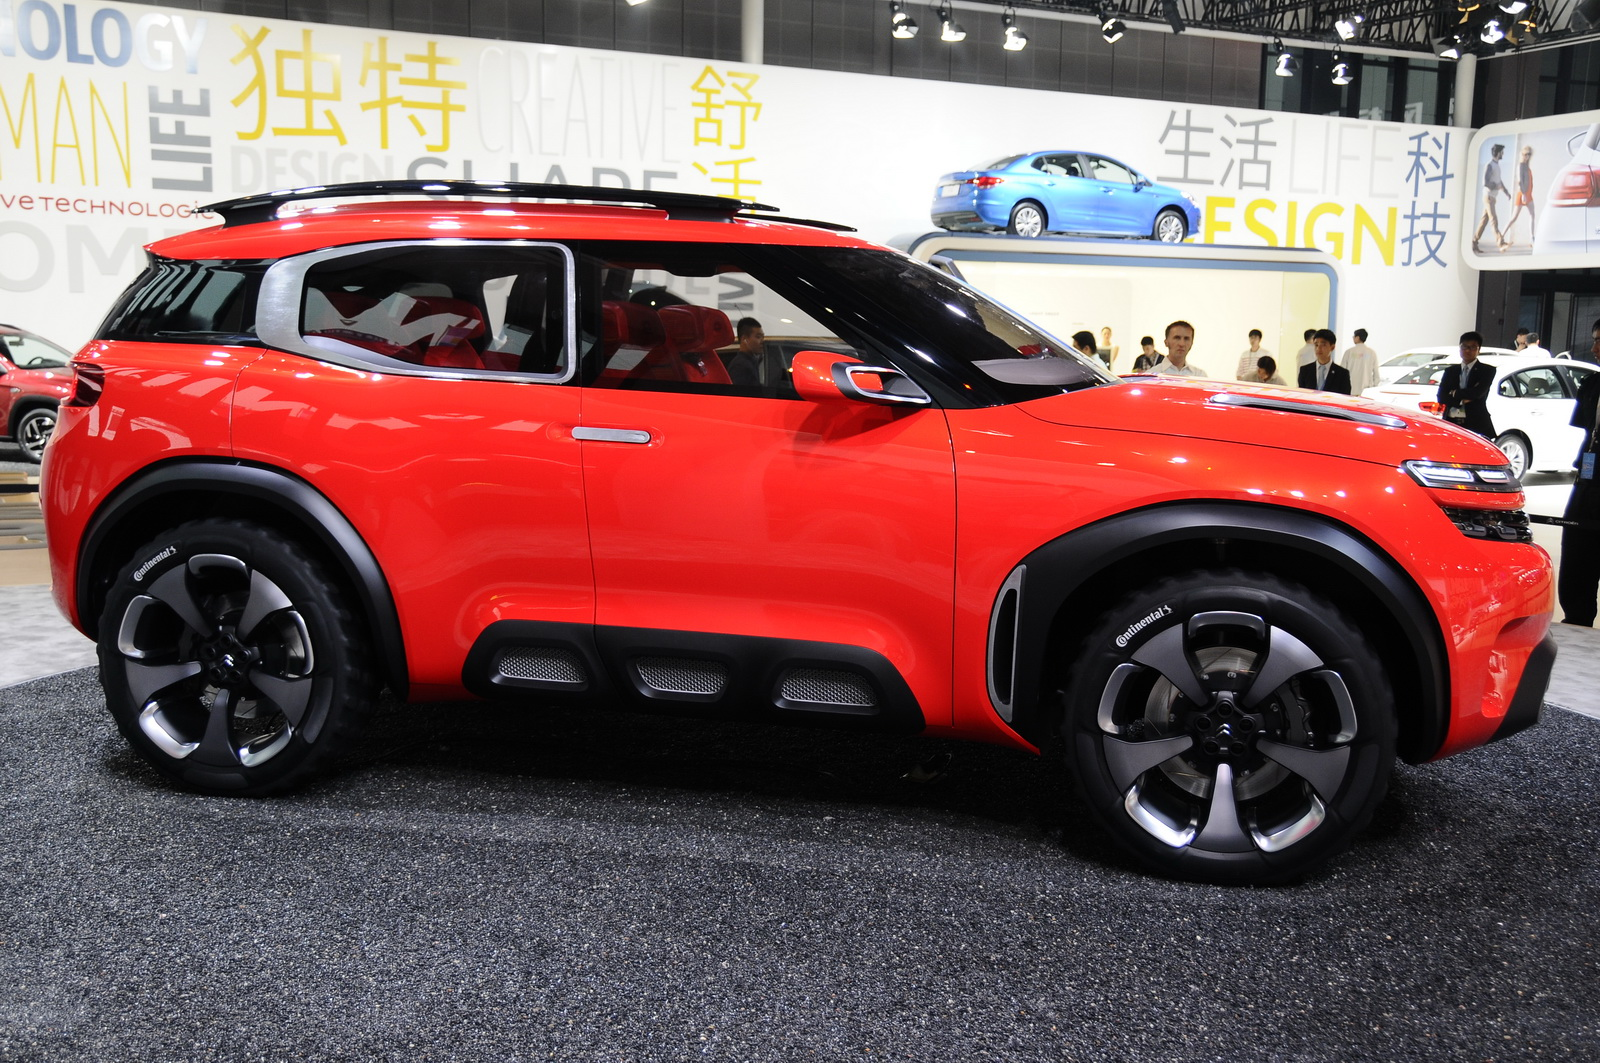 Citroen C4 Cactus Green >> Citroen's Funky Aircross Concept Is A Cactus On Steroids | Carscoops